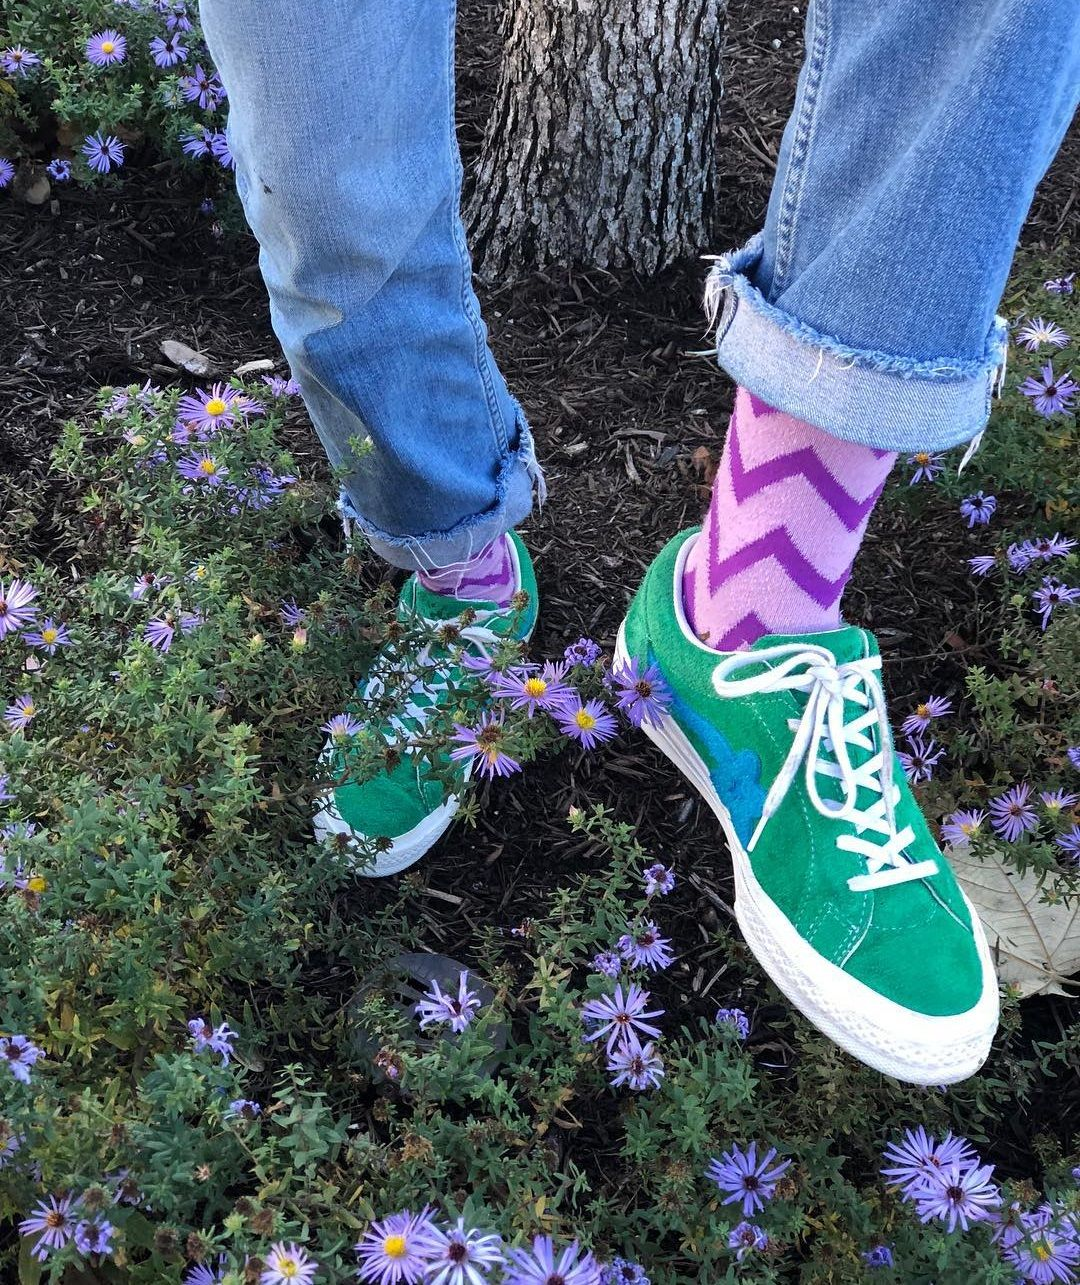 Tyler the Creator x Converse One Star OX Golf le Fleur